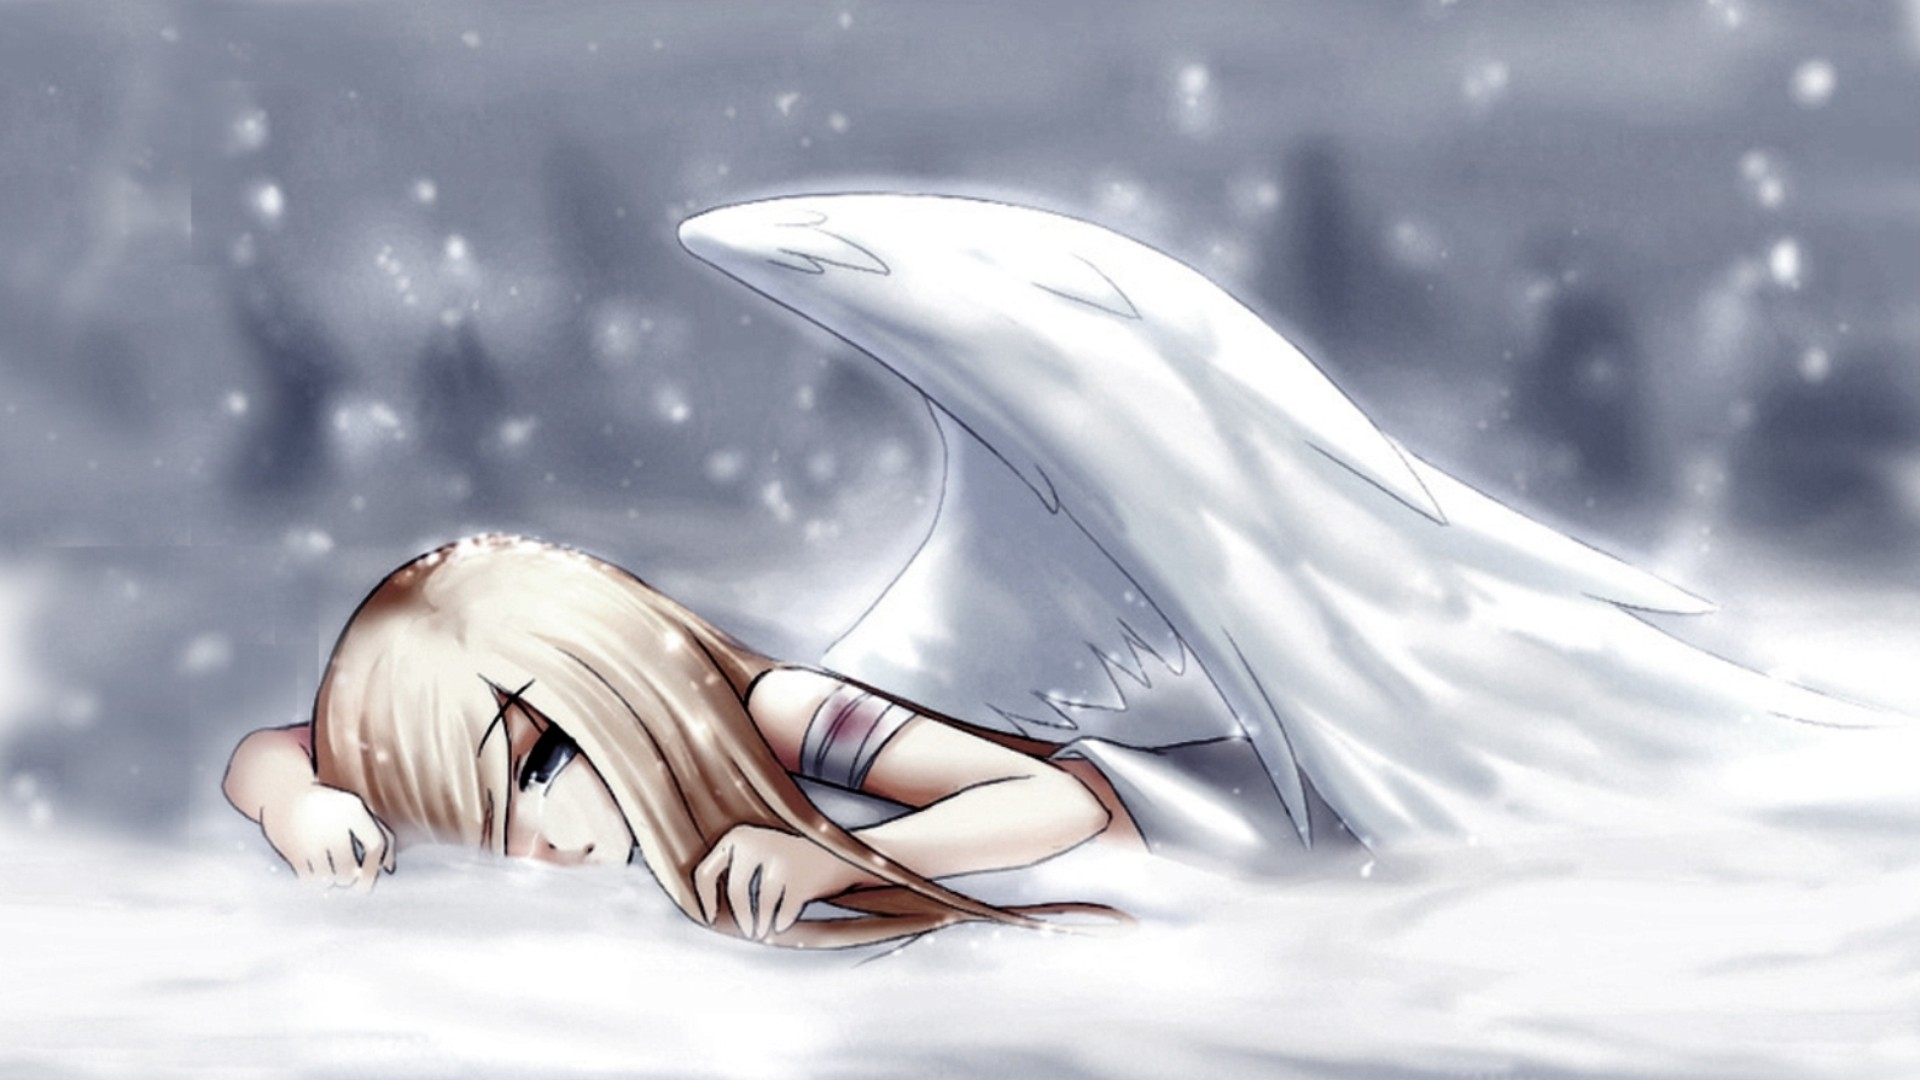 Angel Full HD Wallpaper and Background Image   1920x1080 ...